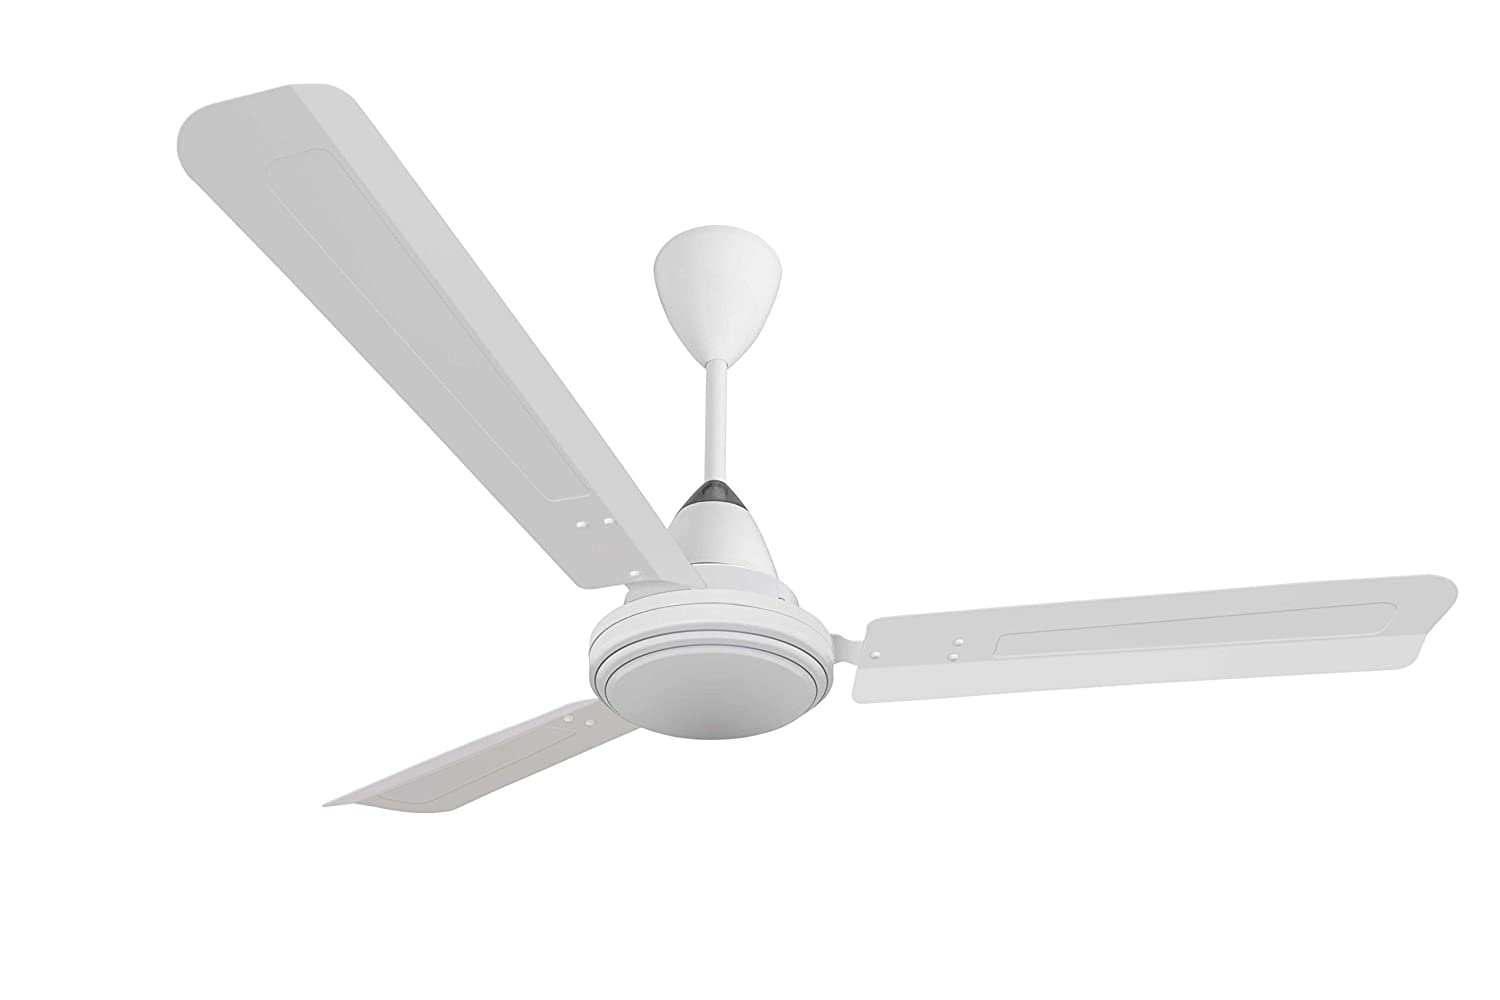 Orient Electric Energy Saver Ecotech Plus 1200mm Ceiling Fan With Remote White At Low S In India